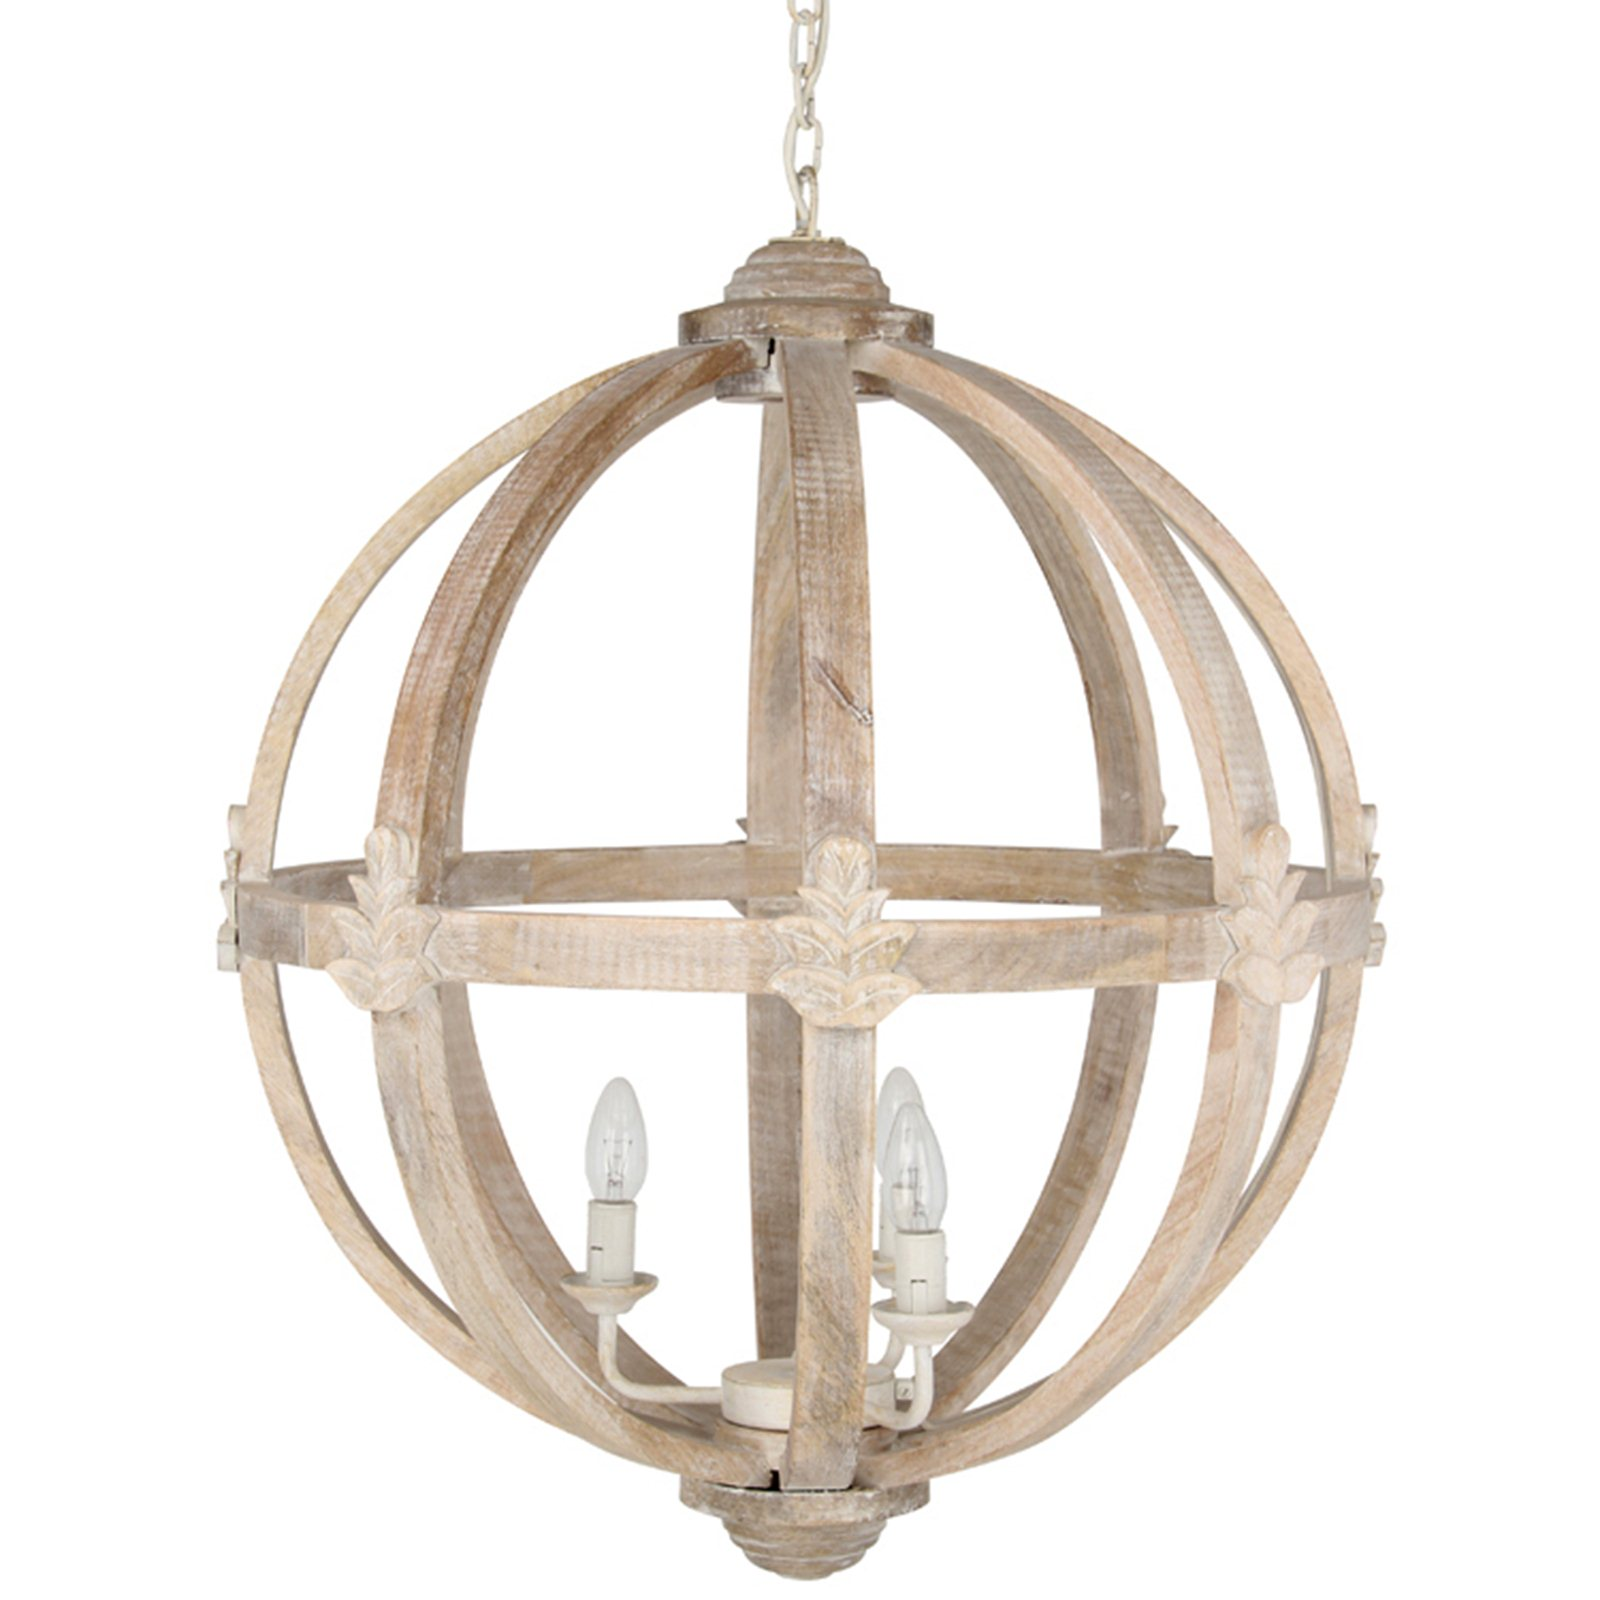 Wooden Lighting Pendants Hicks And Hicks Dene Round Wood Pendant Light Hicks And Hicks